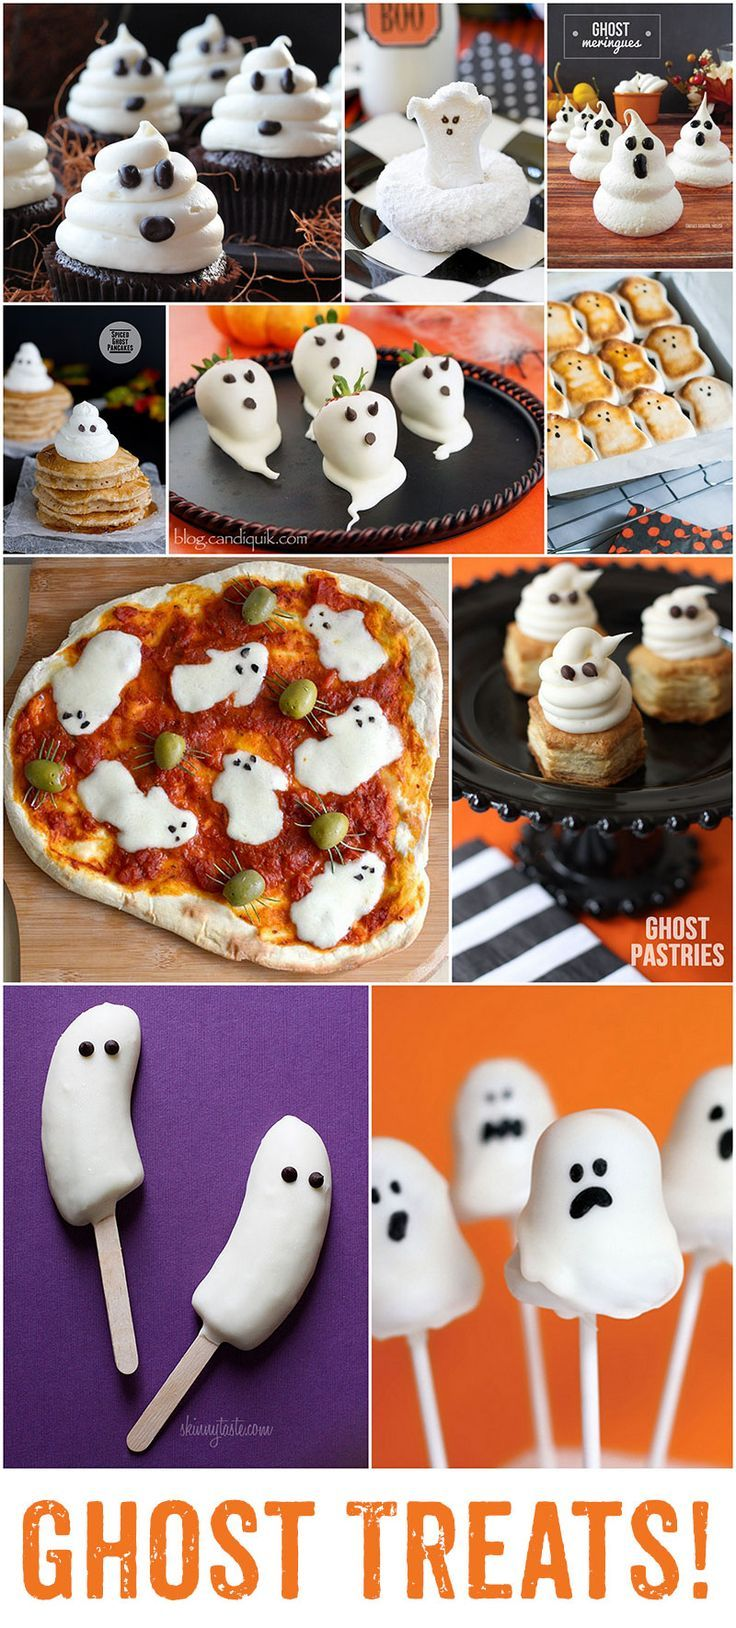 Favorite Halloween Treats.The Best Ghost Treats For Halloween Ghost Treats Halloween Treats Halloween Food For Party